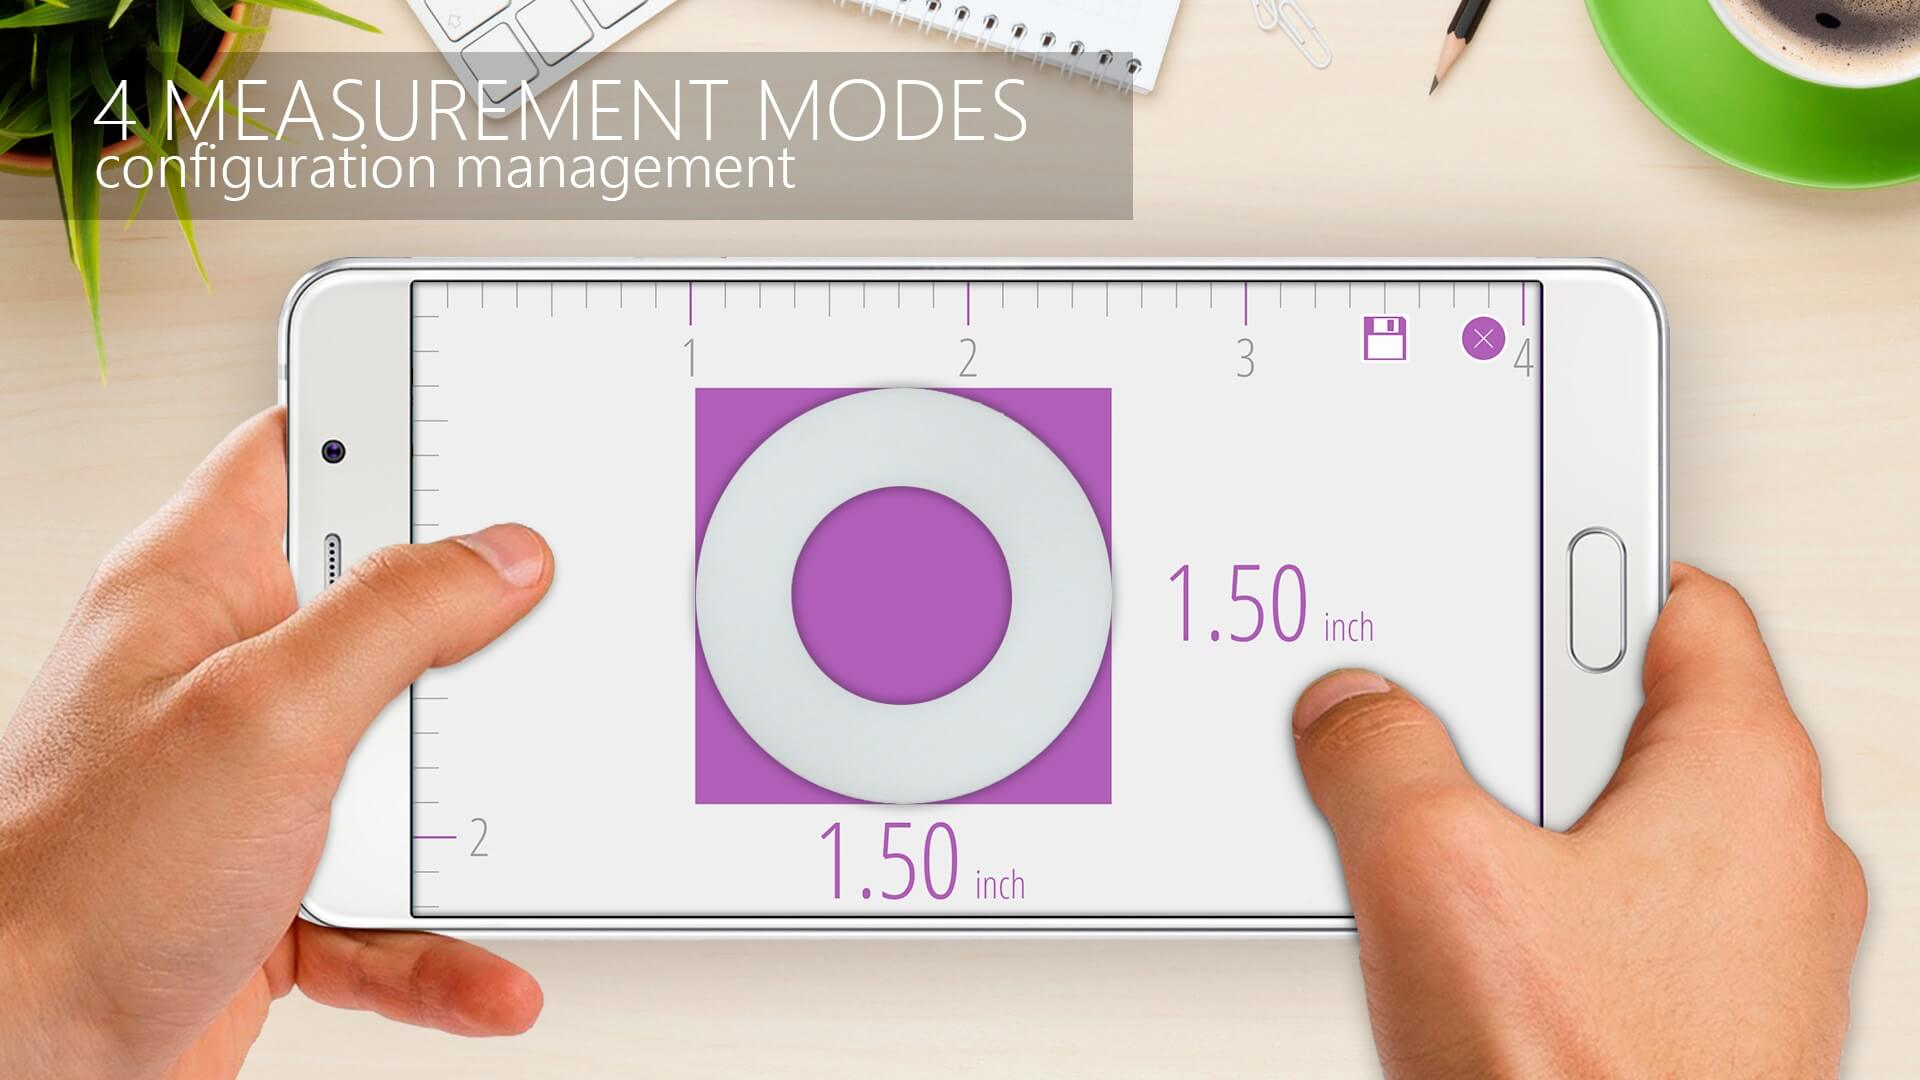 ruler-android-app-measurement-modes